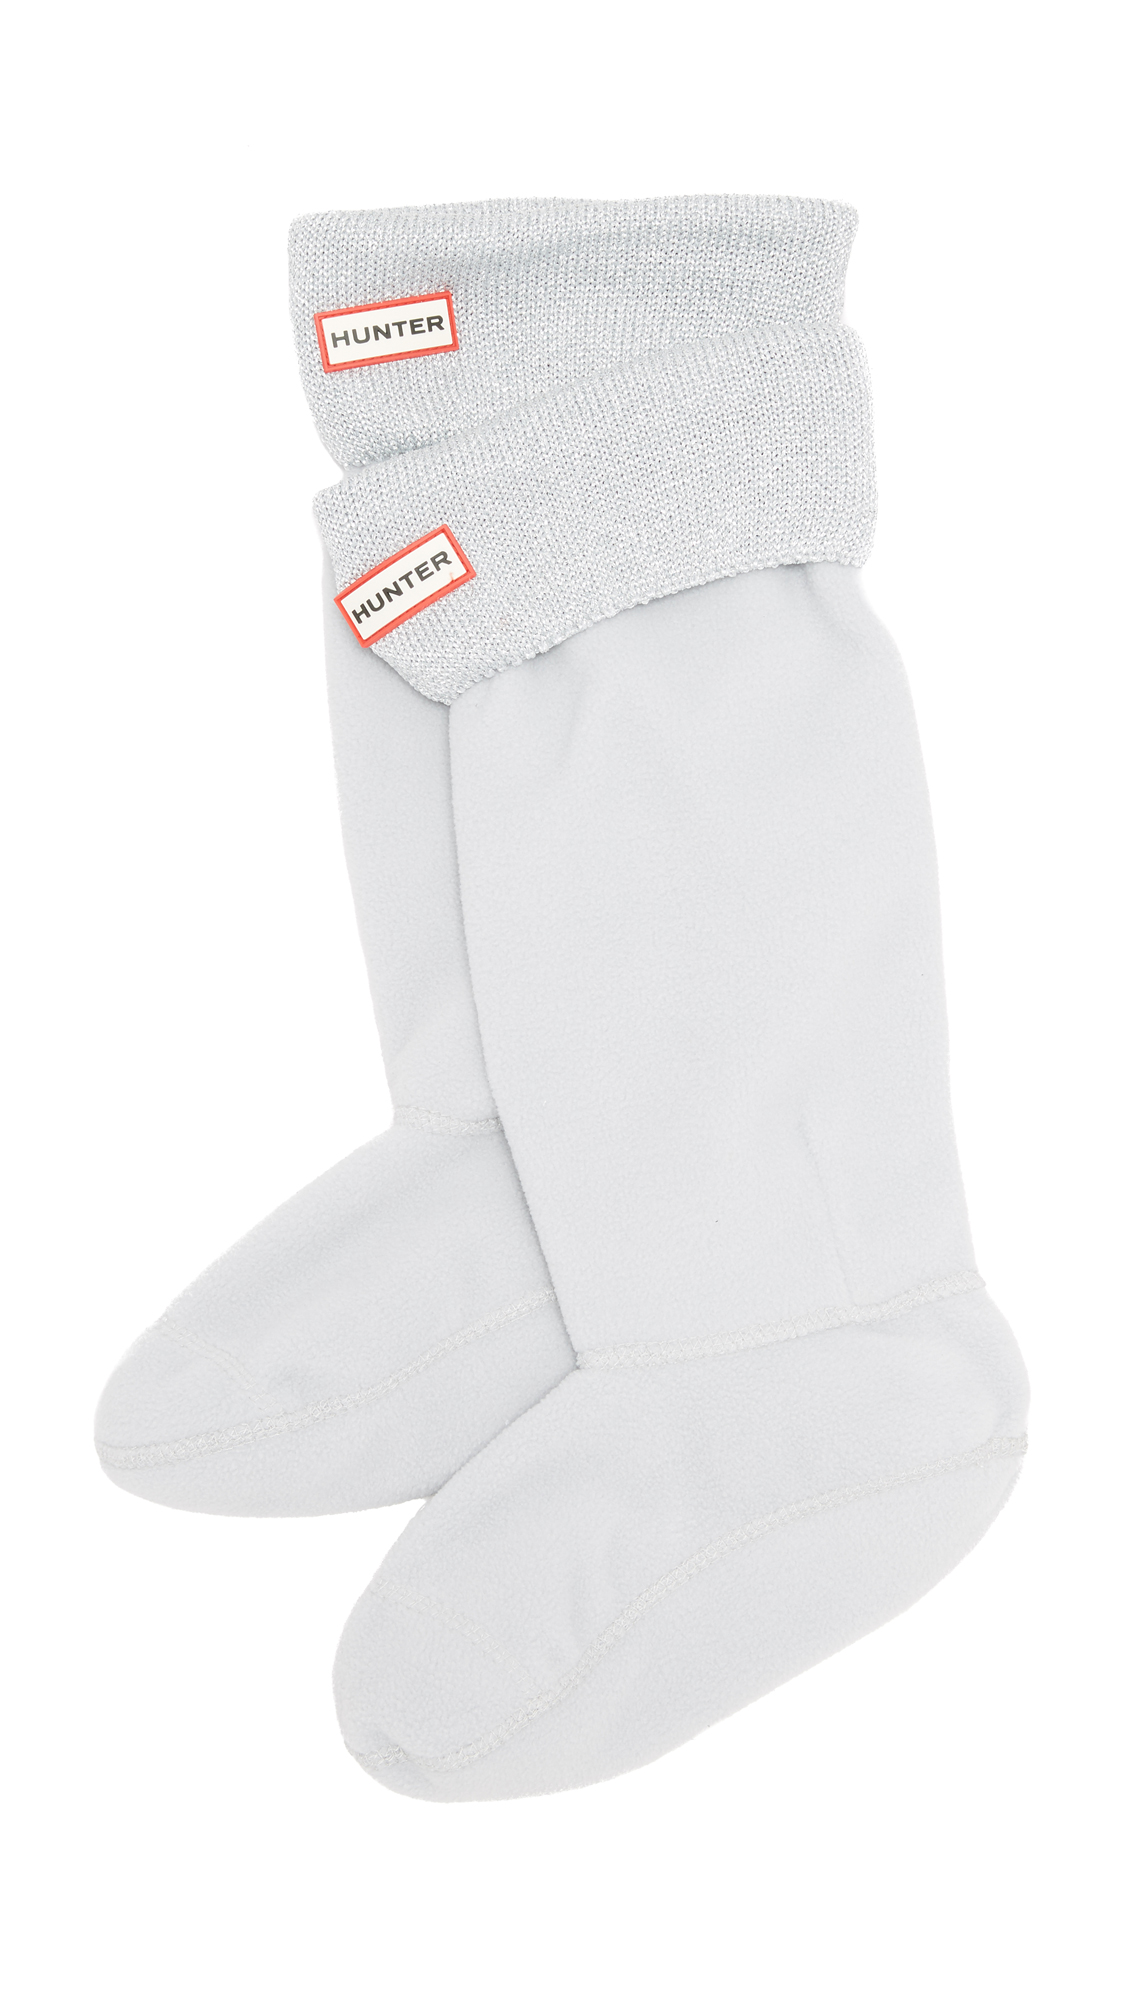 Hunter Boots Glitter Cuff Boot Socks - Dove Grey at Shopbop